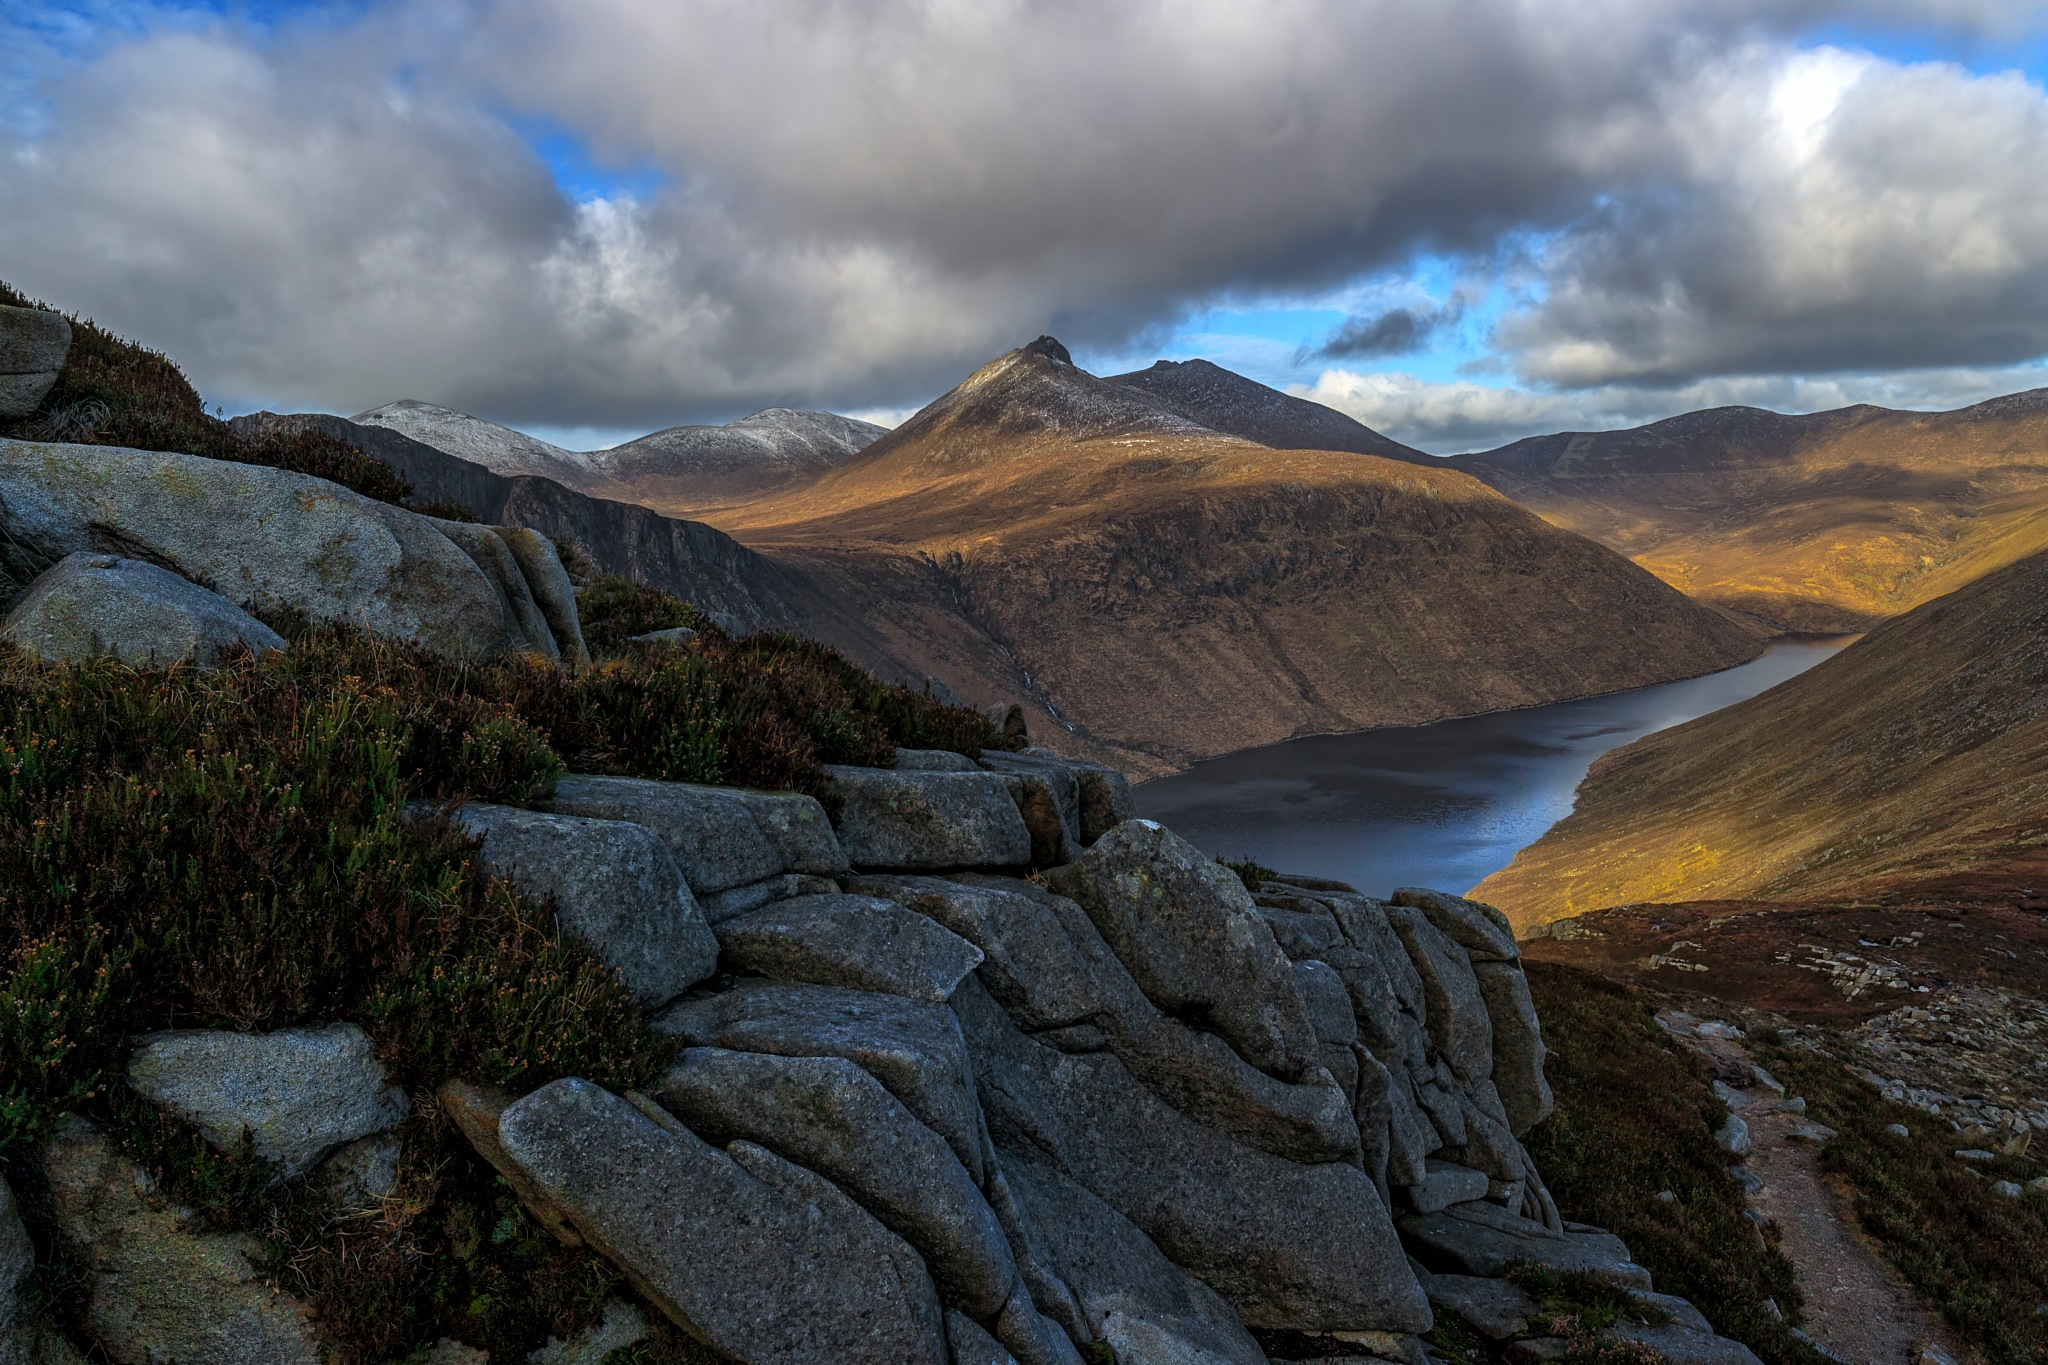 Bearnagh In View by Barrie Lathwell